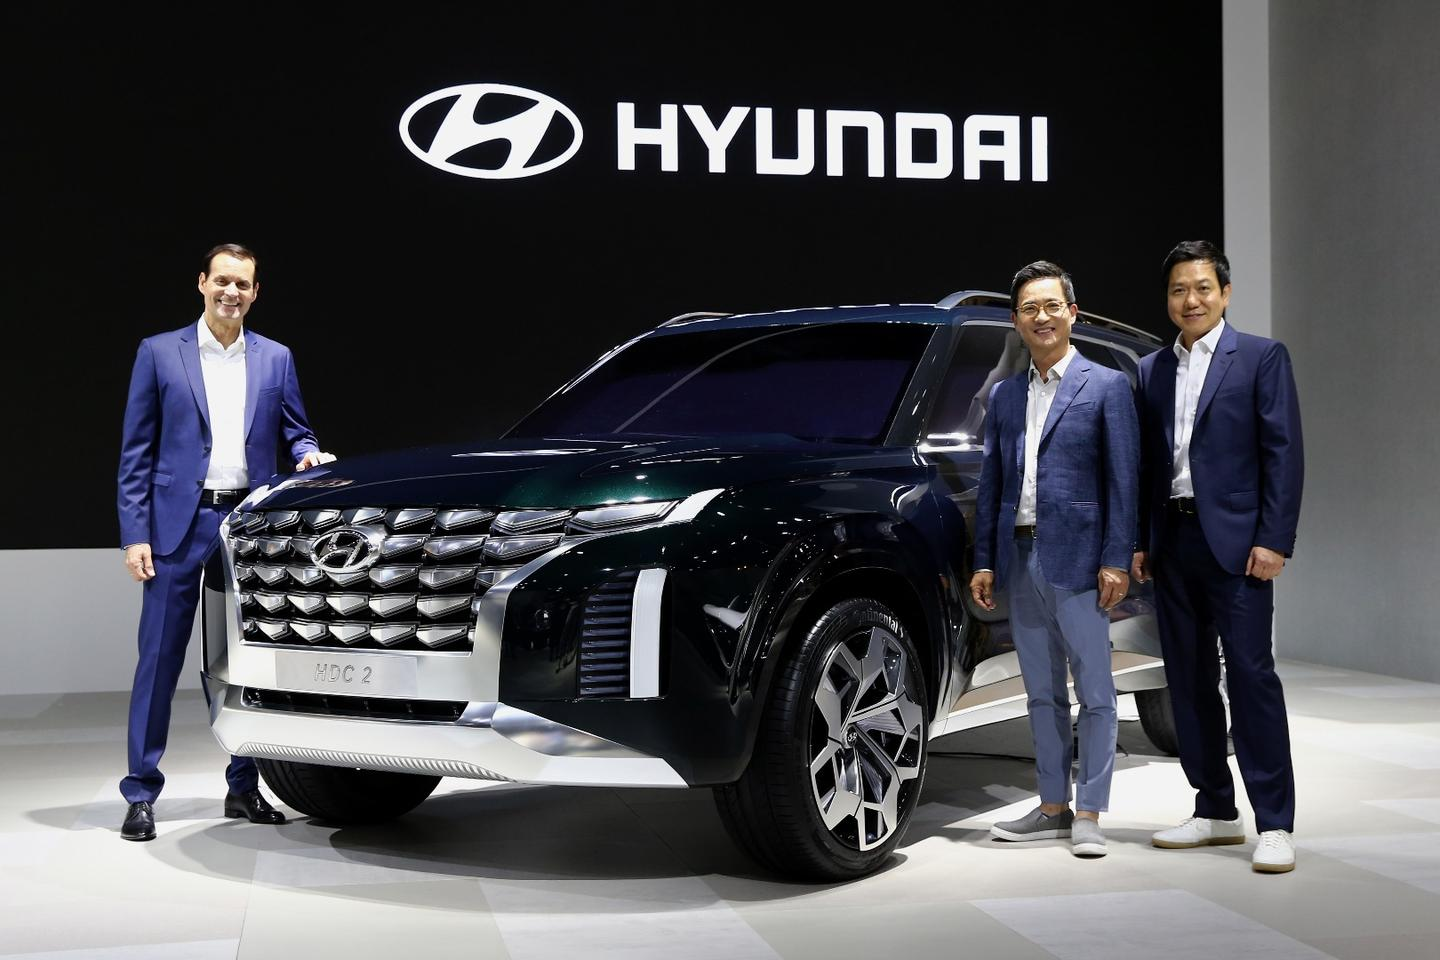 Hyundai introduces the HDC-2 Grandmaster at the Busan International Motor Show